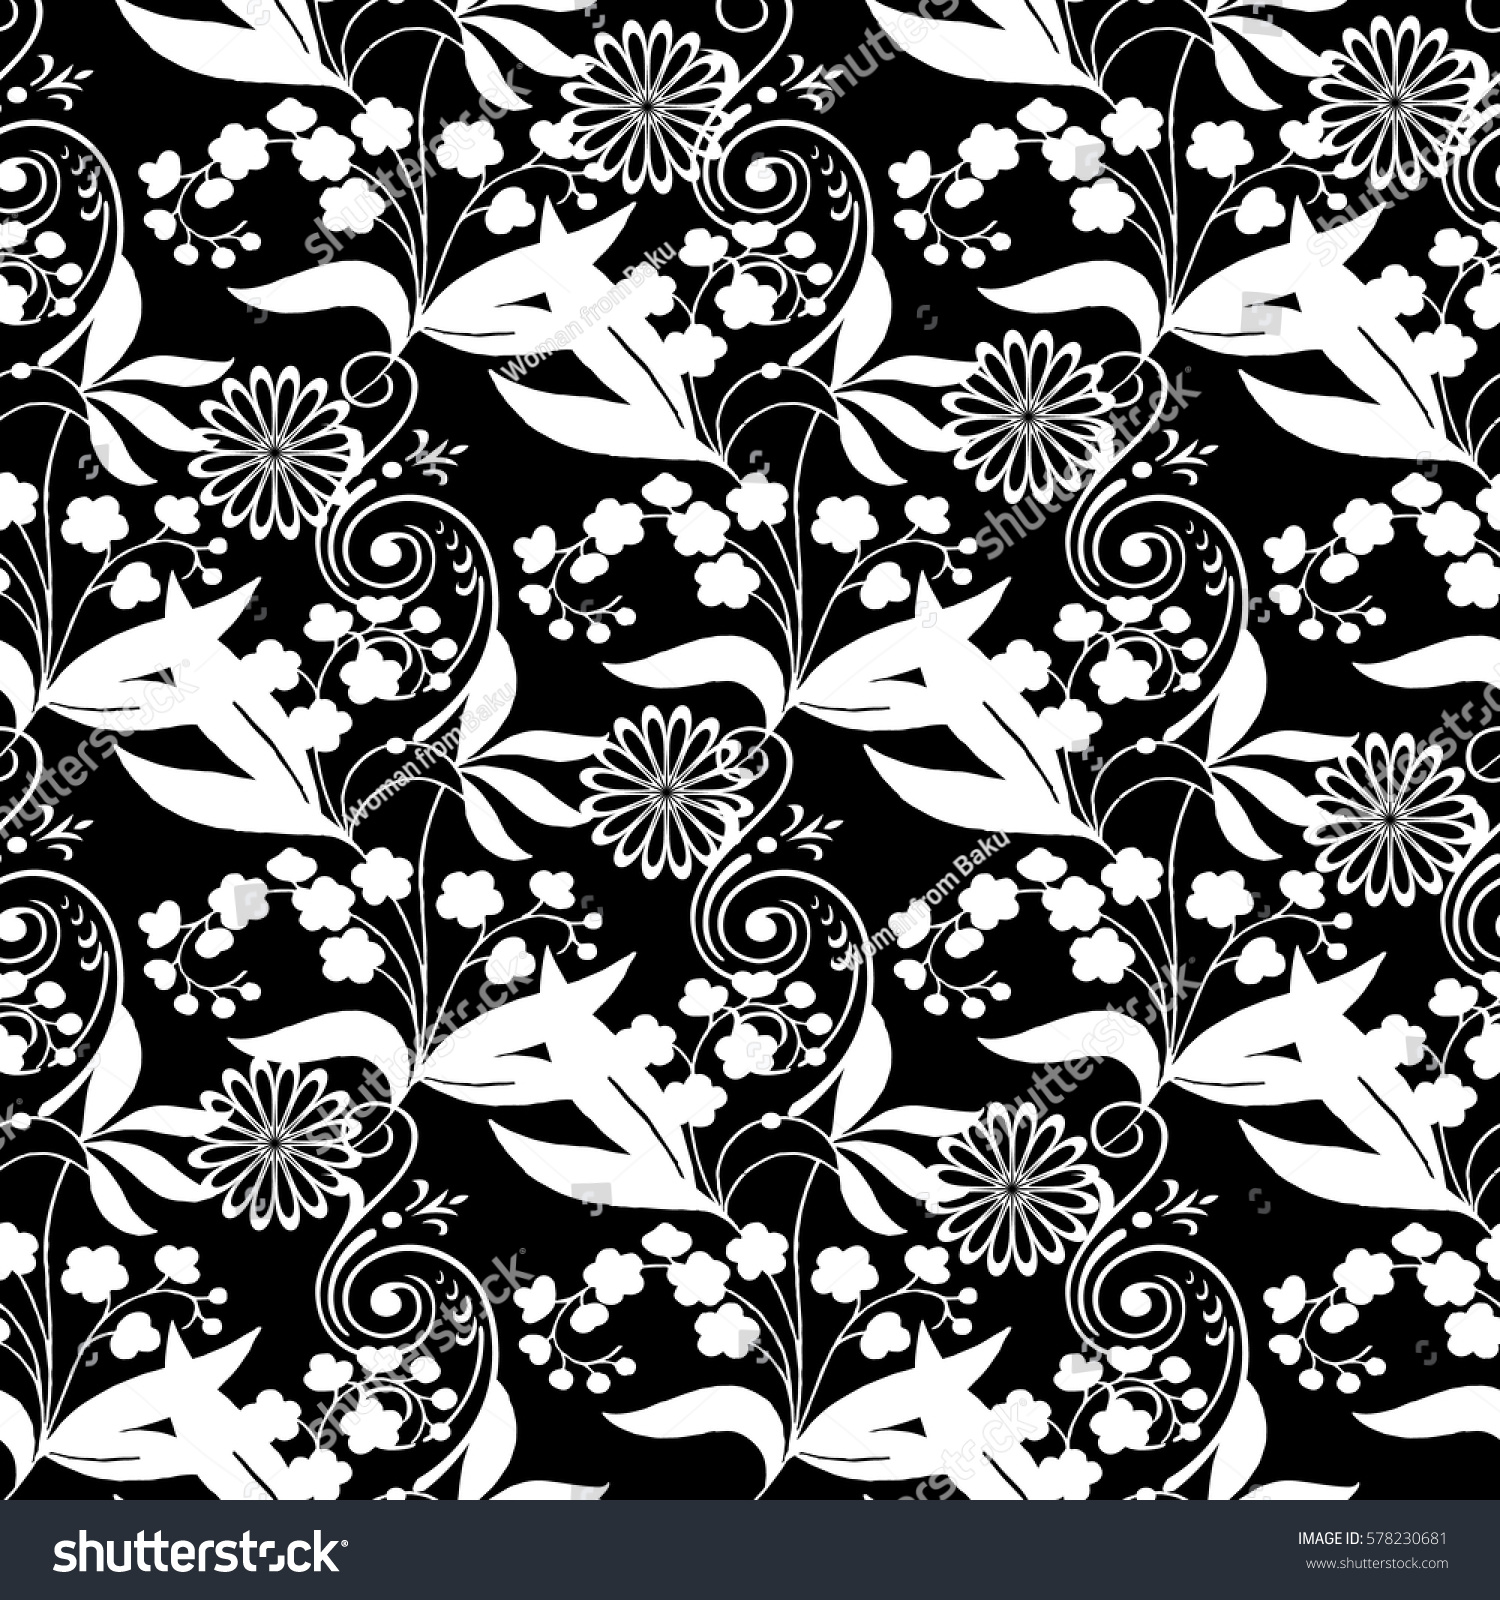 Floral Seamless Pattern Isolated Black Background Wallpaper Stock